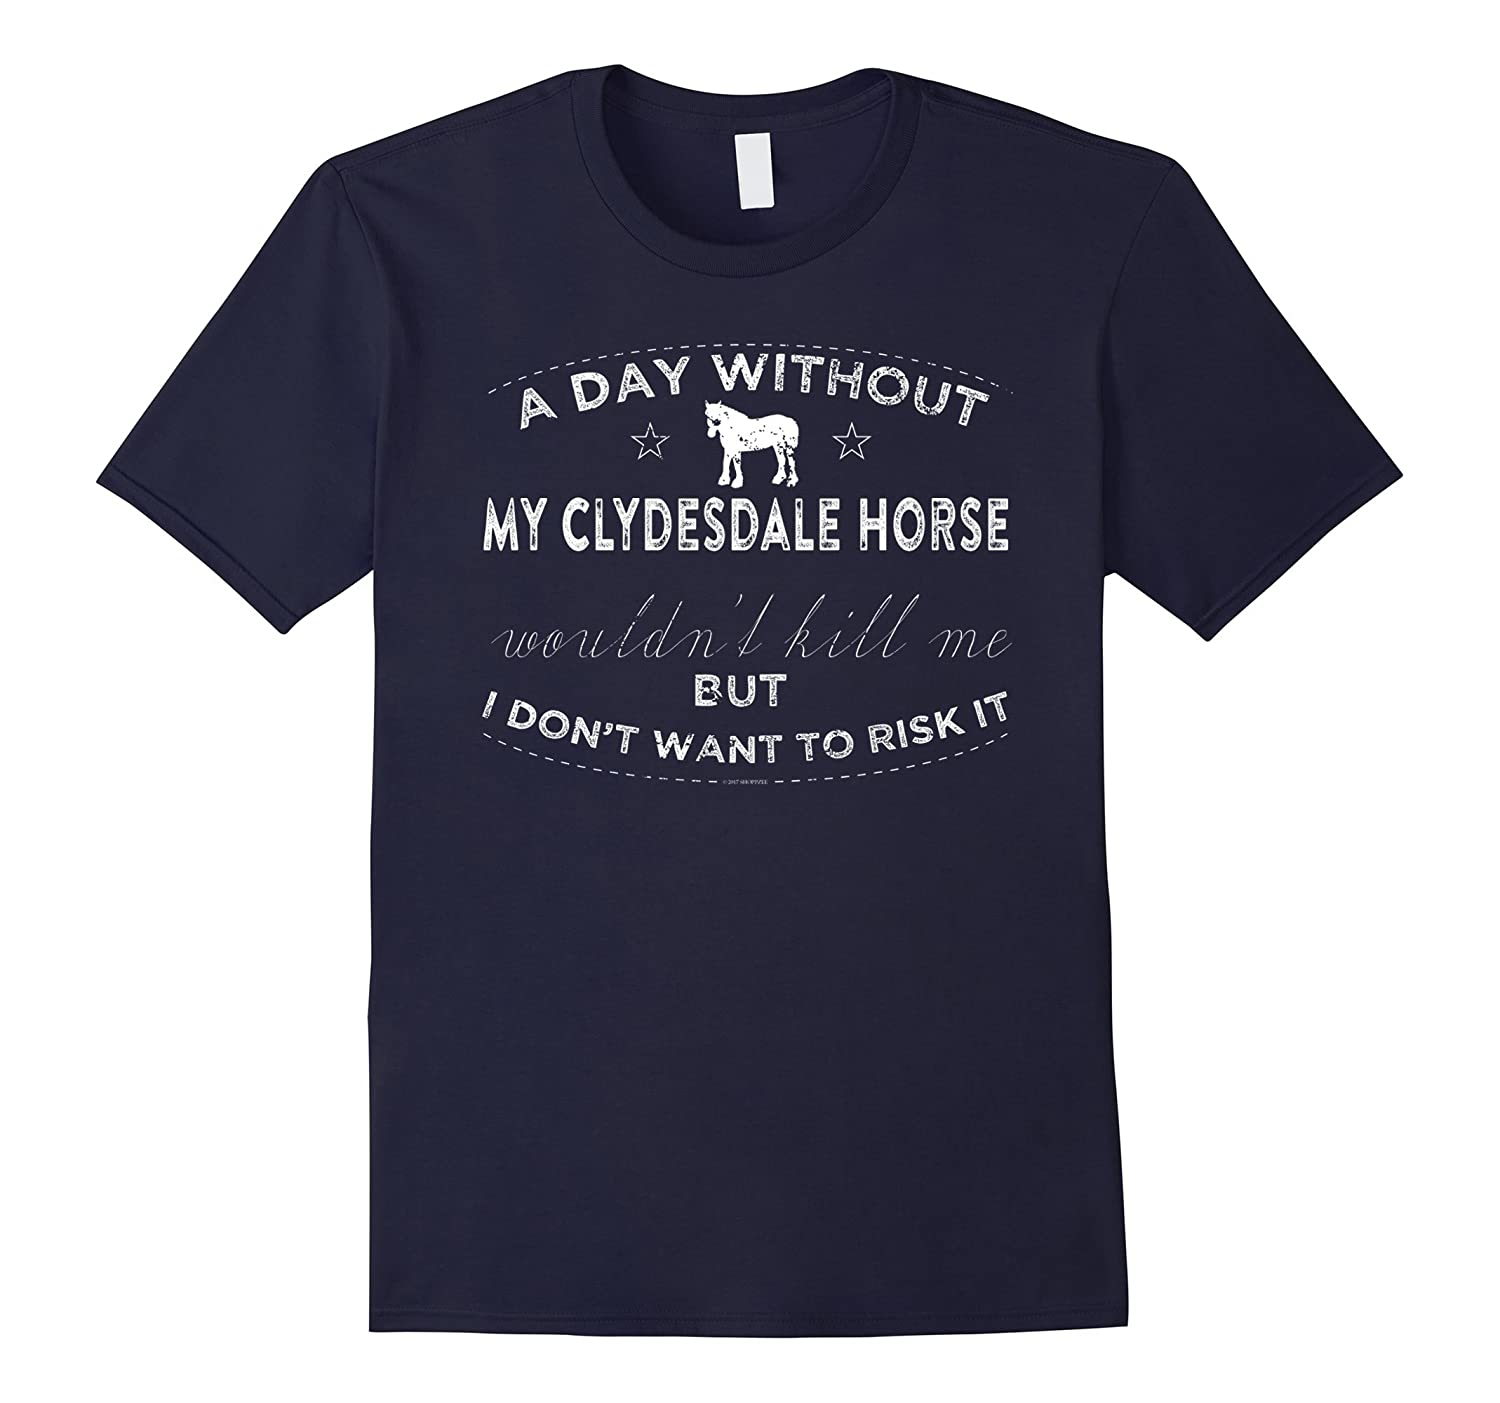 A Day Without My Clydesdale Horse Shirt-Vaci